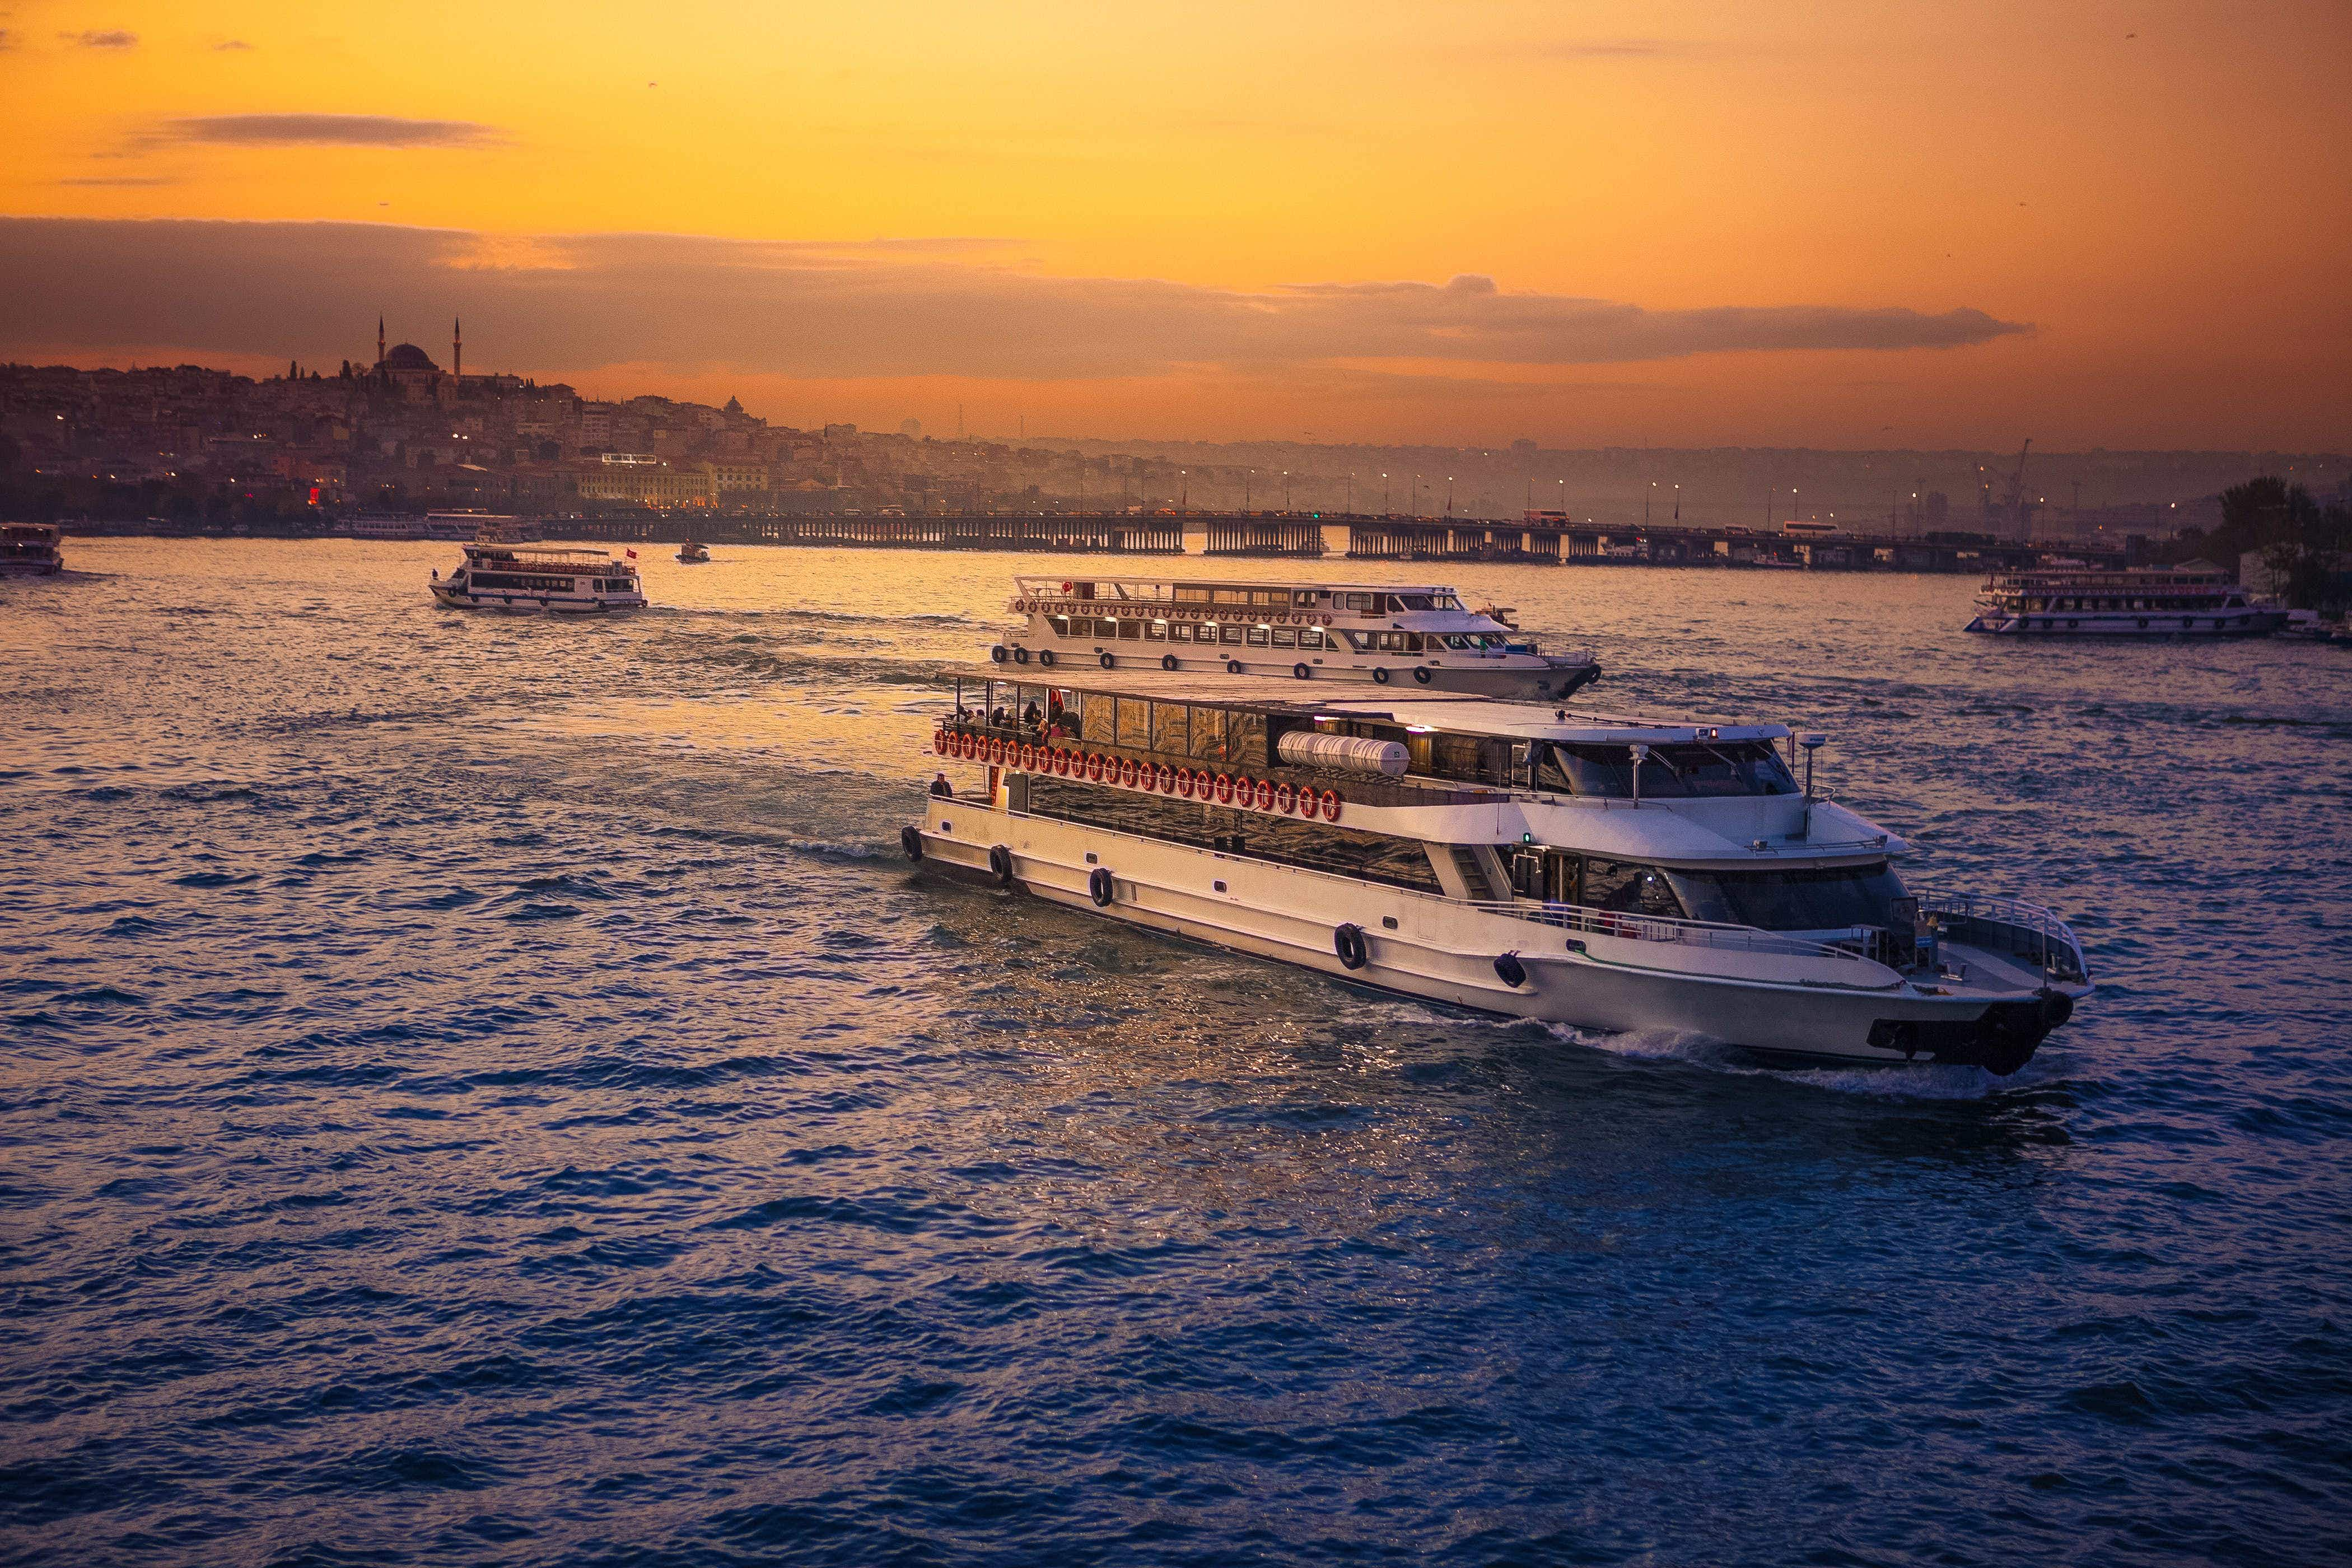 Touring Istanbul by boat just got easier with new ferry routes for summer